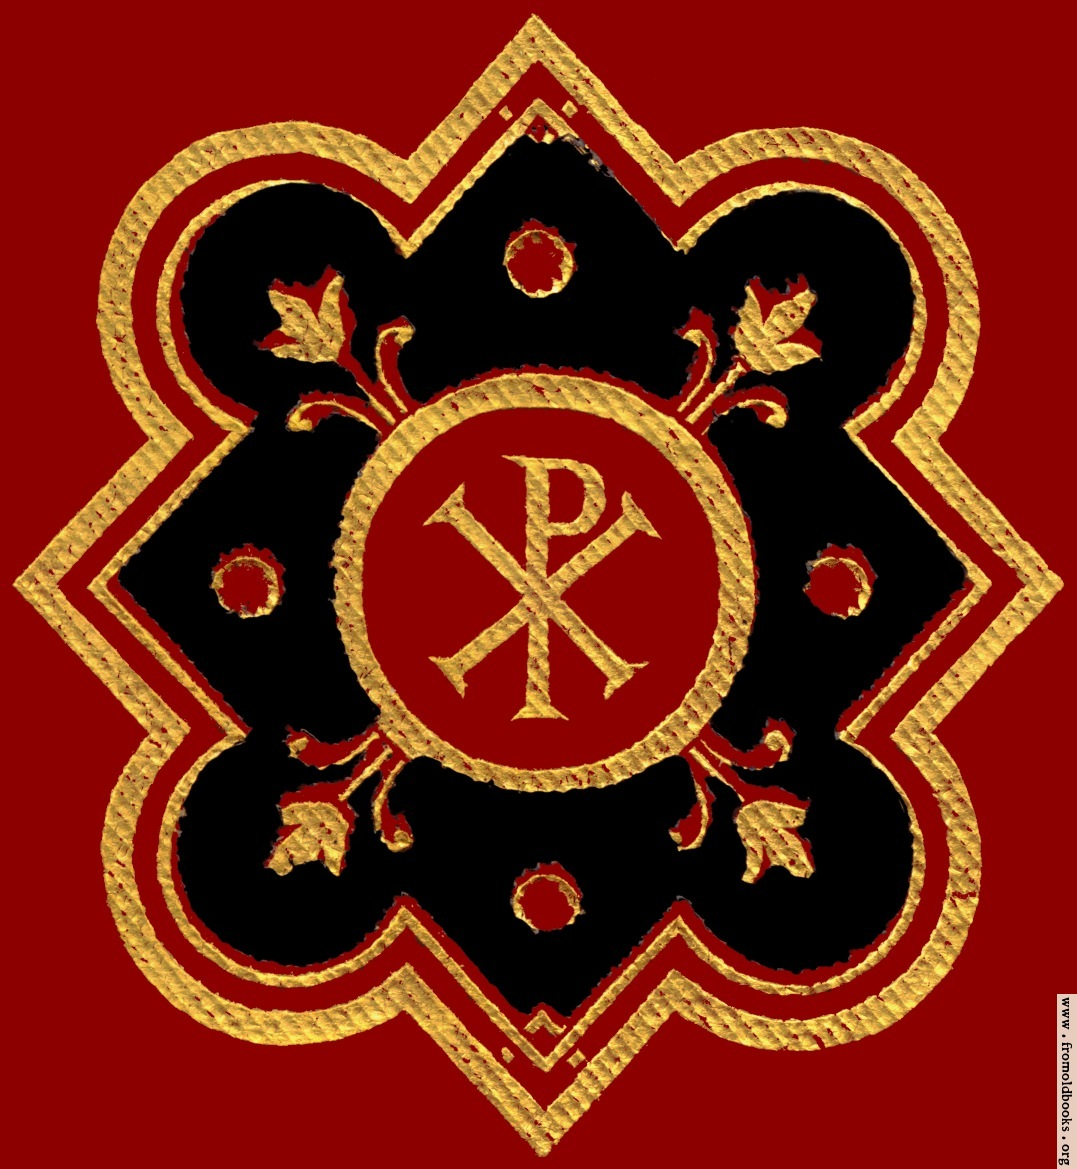 Chi rho symbol px in red black ad gold from front cover 1077x1169 250k jpg free download buycottarizona